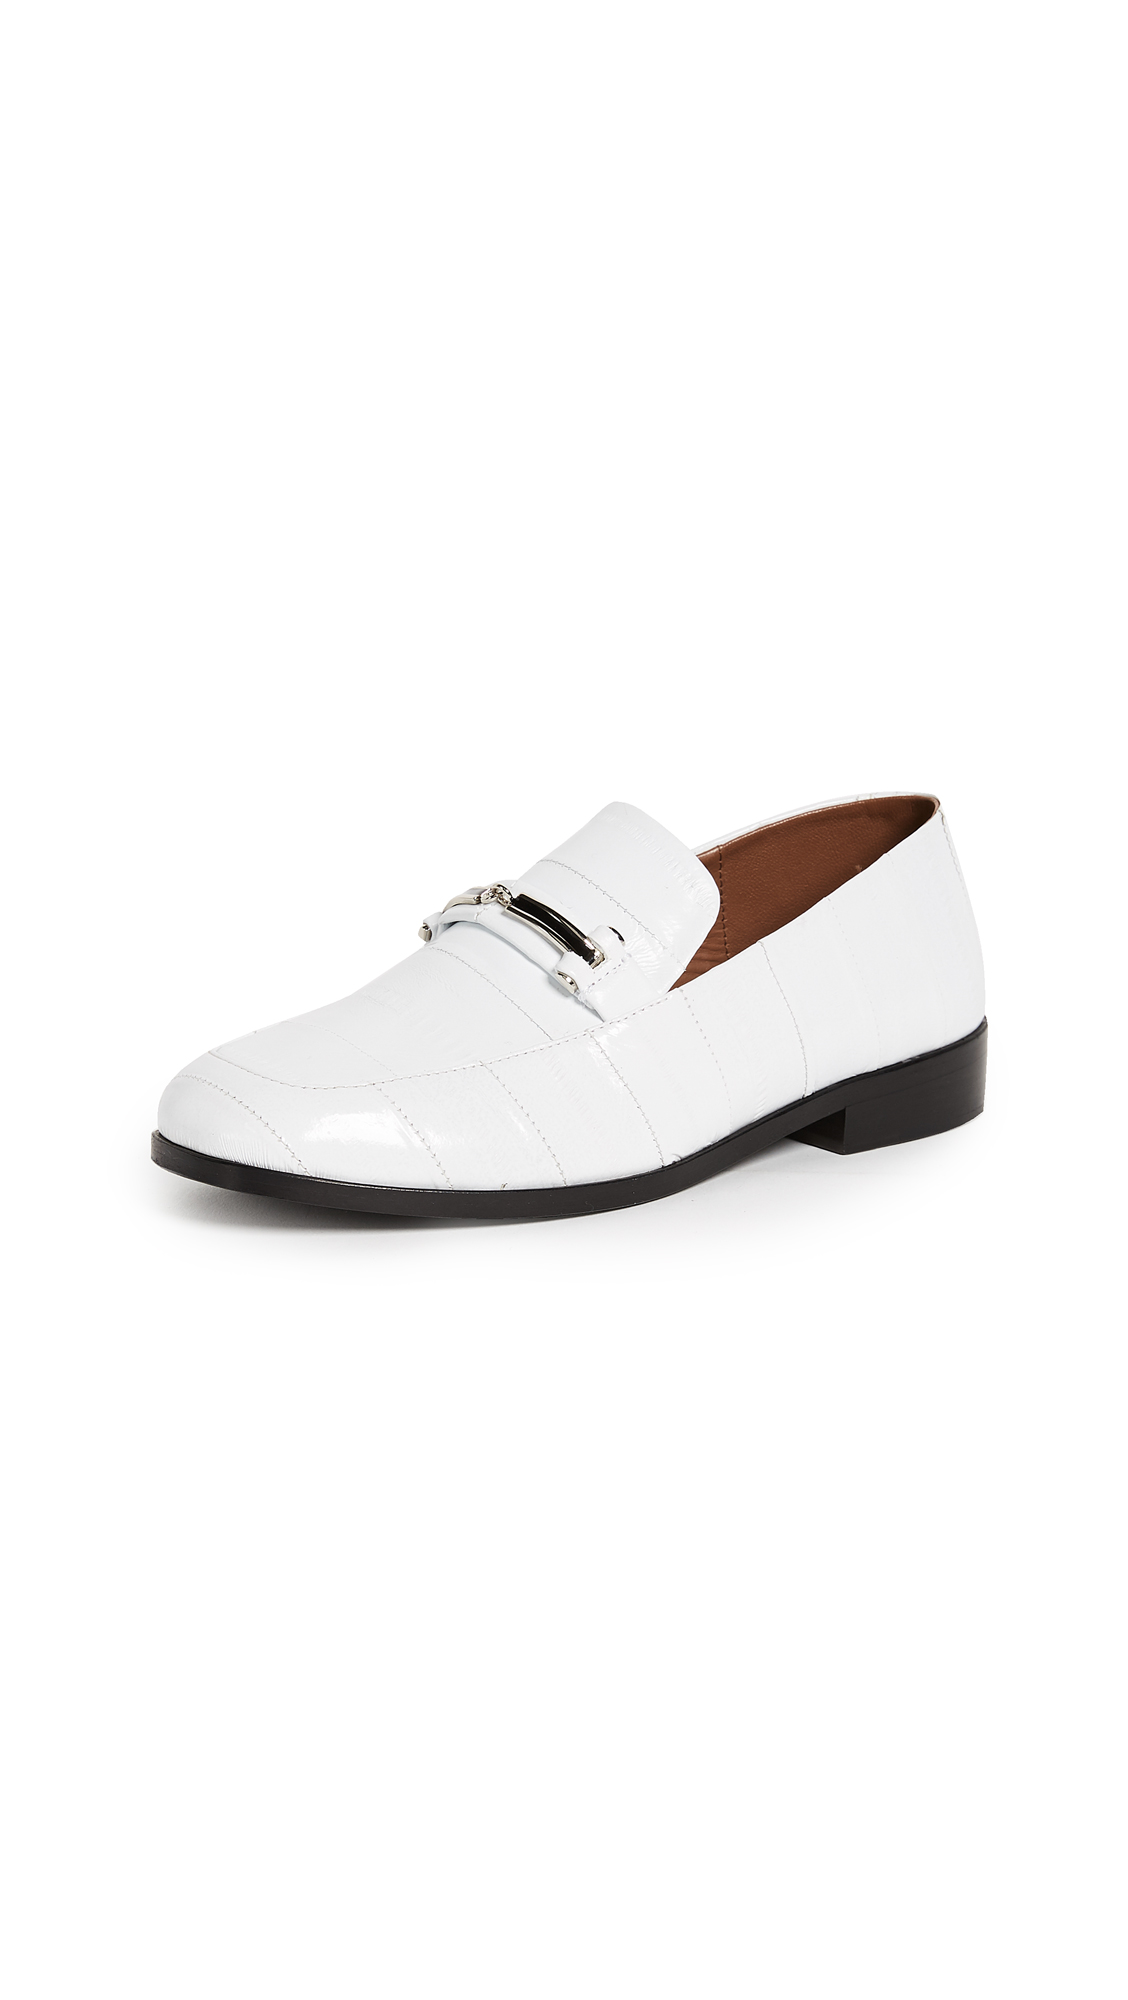 Newbark Melanie Loafers - White